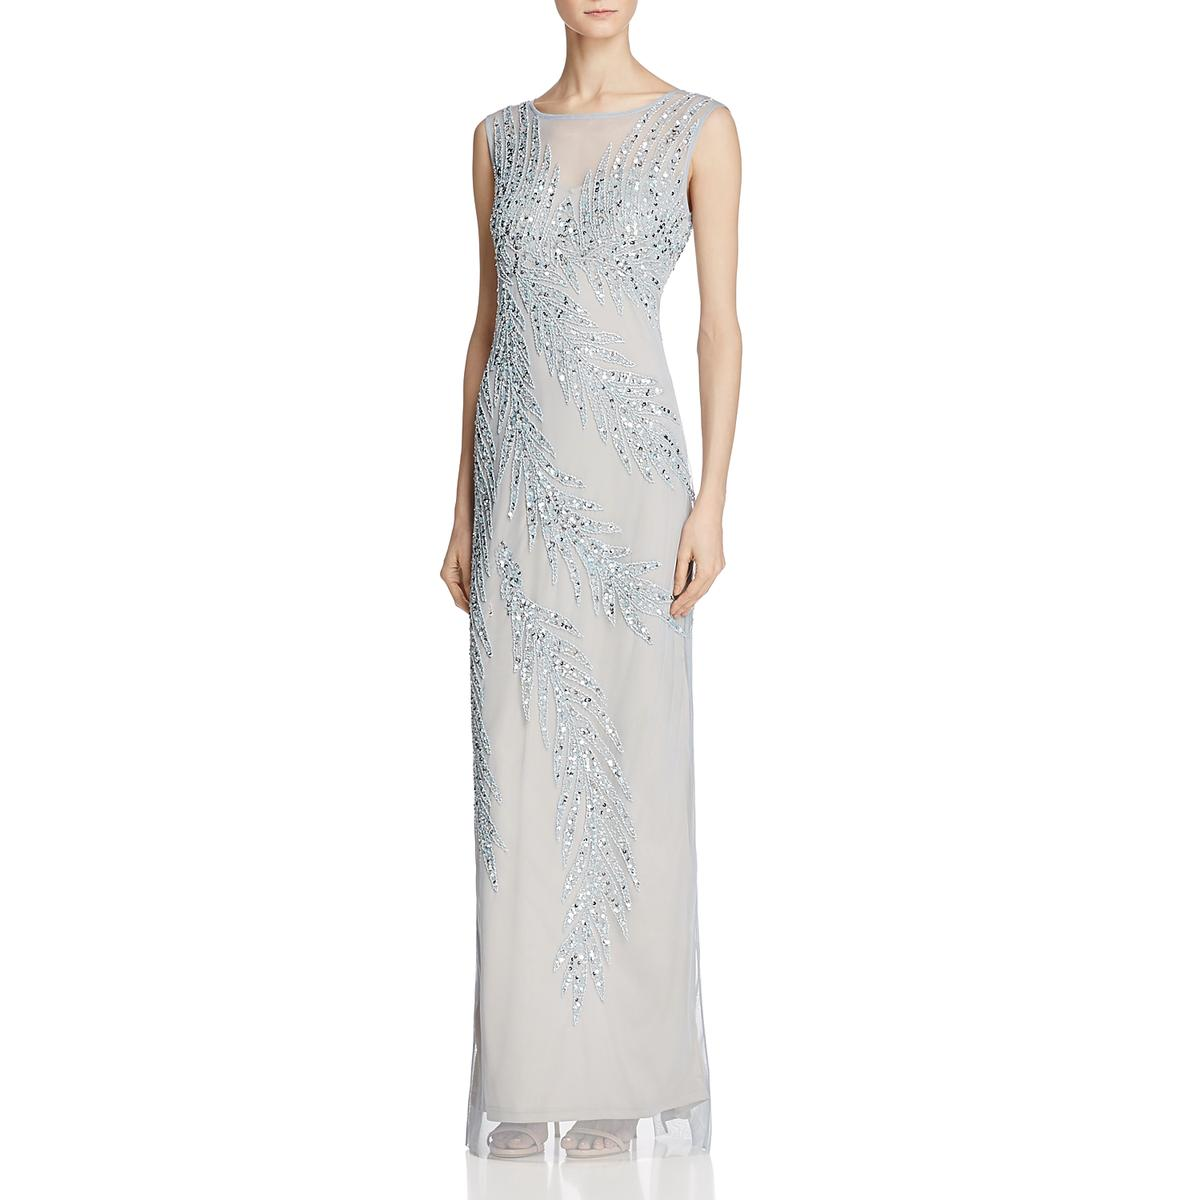 c3dc191e9091c5 Details about Adrianna Papell Womens Blue Beaded Illusion Evening Dress Gown  8 BHFO 0432